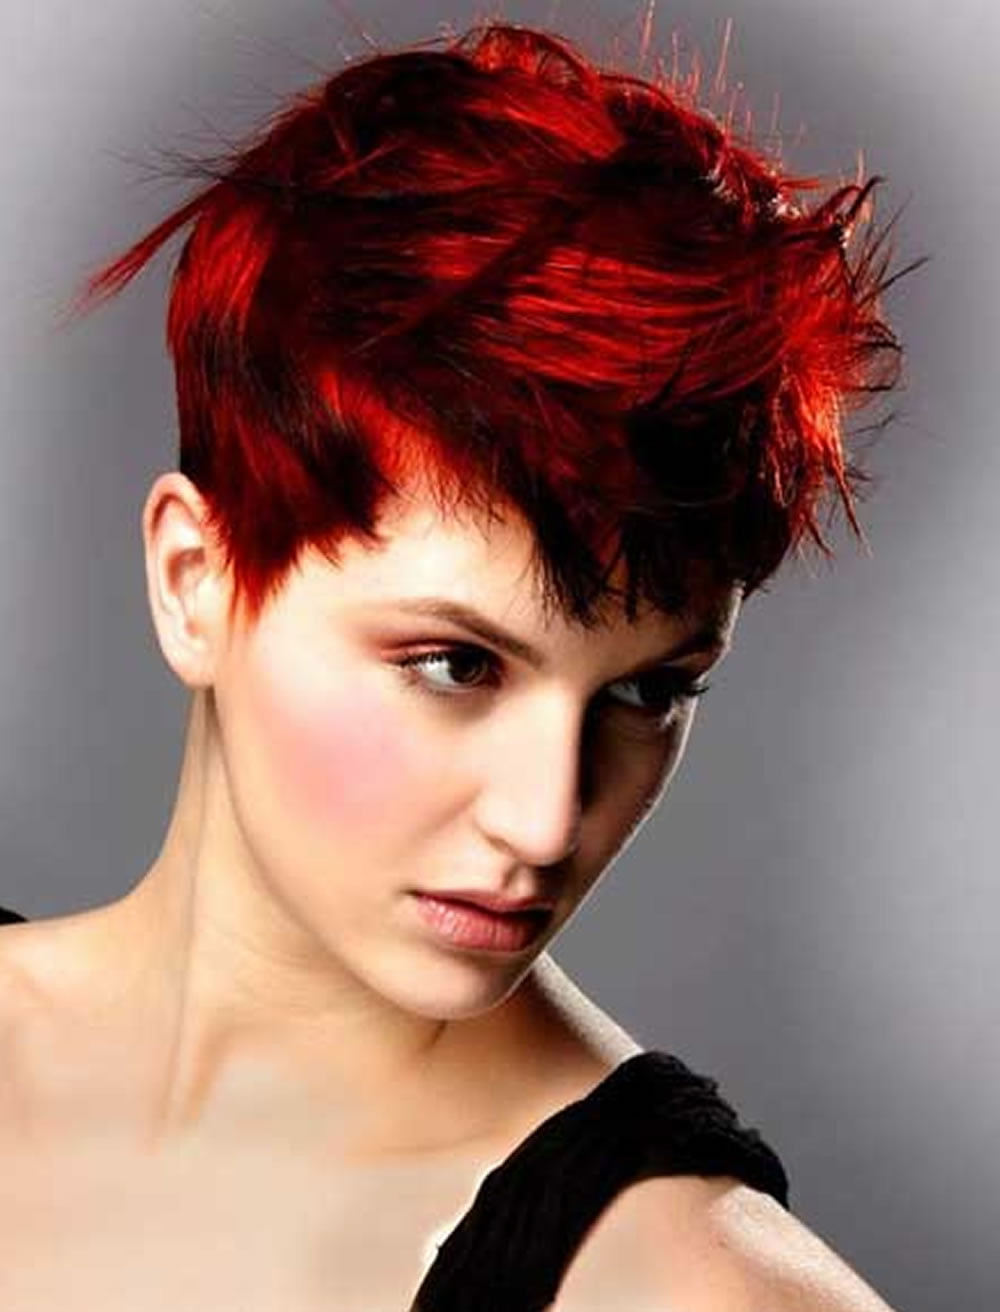 Dashing Red Hair Short Pixie Hairstyles For Long Faces For Pixie Hairstyles With Red And Blonde Balayage (View 16 of 20)